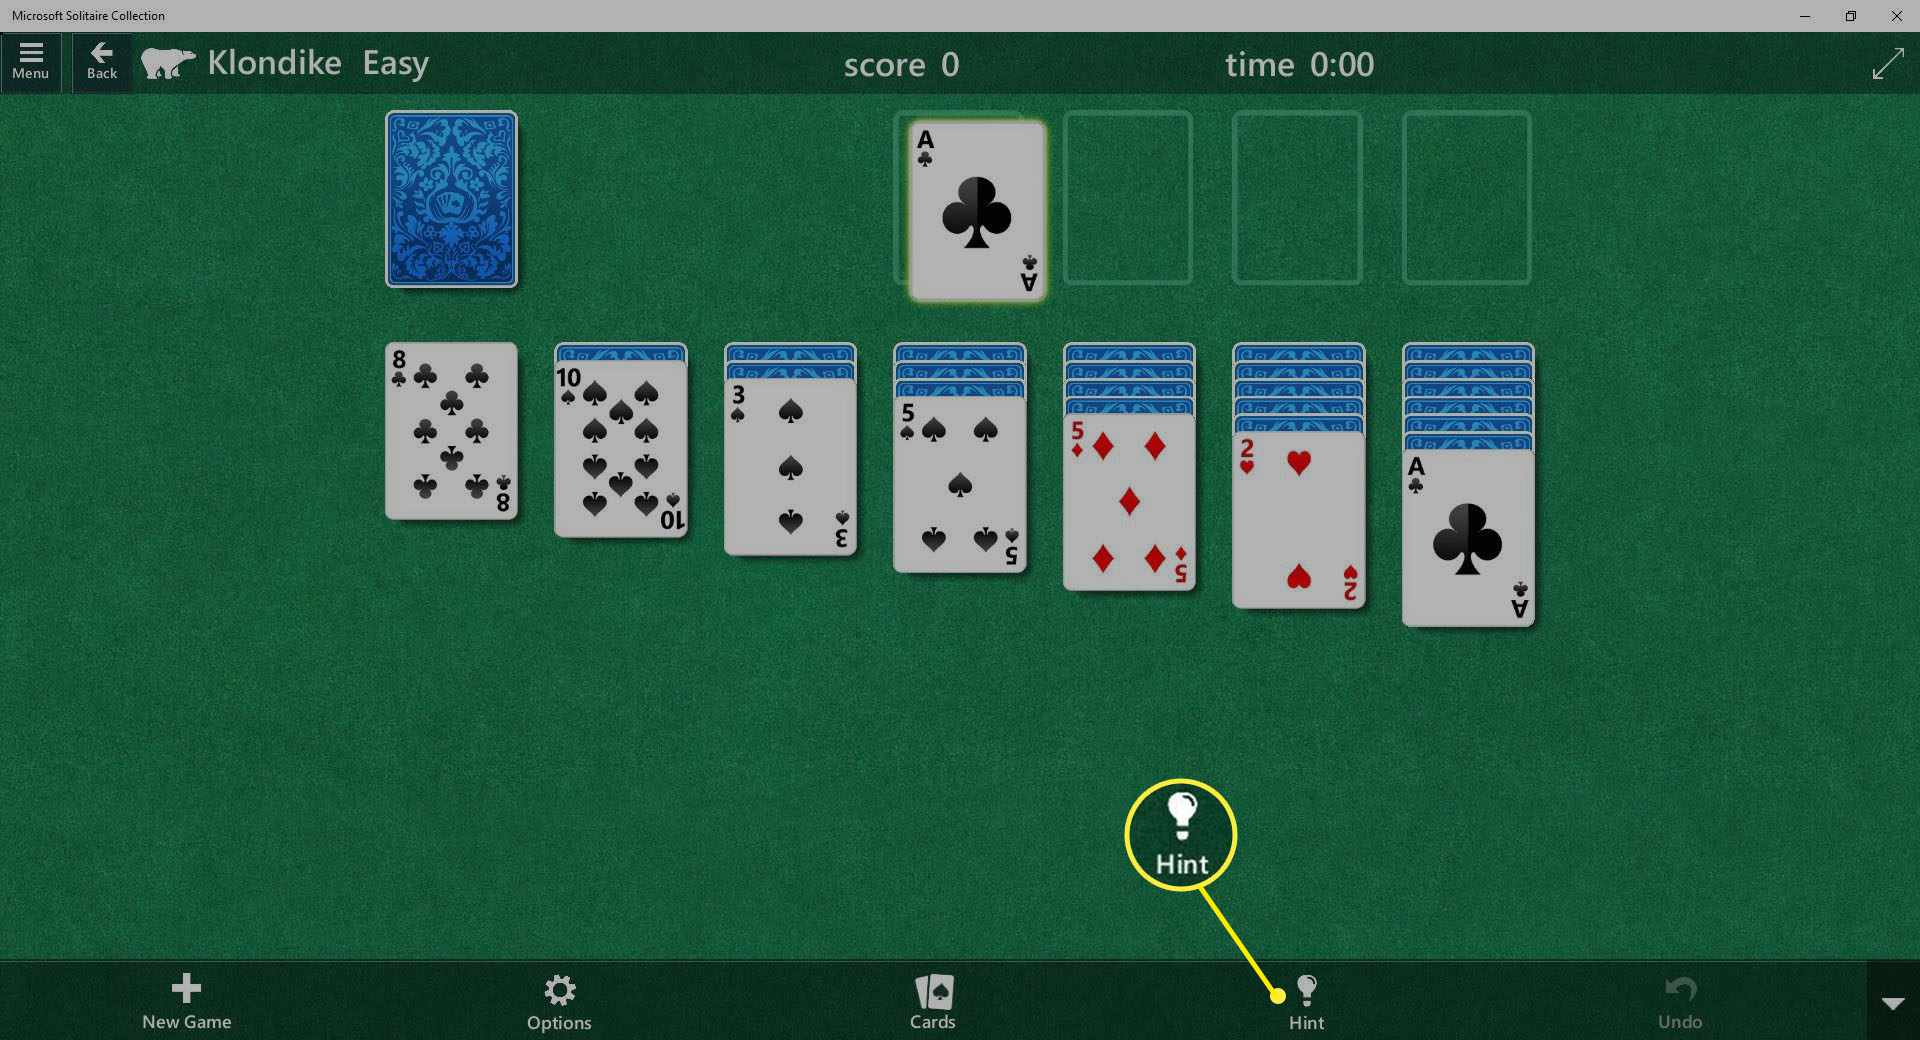 Screenshot of Hint in MS Solitaire